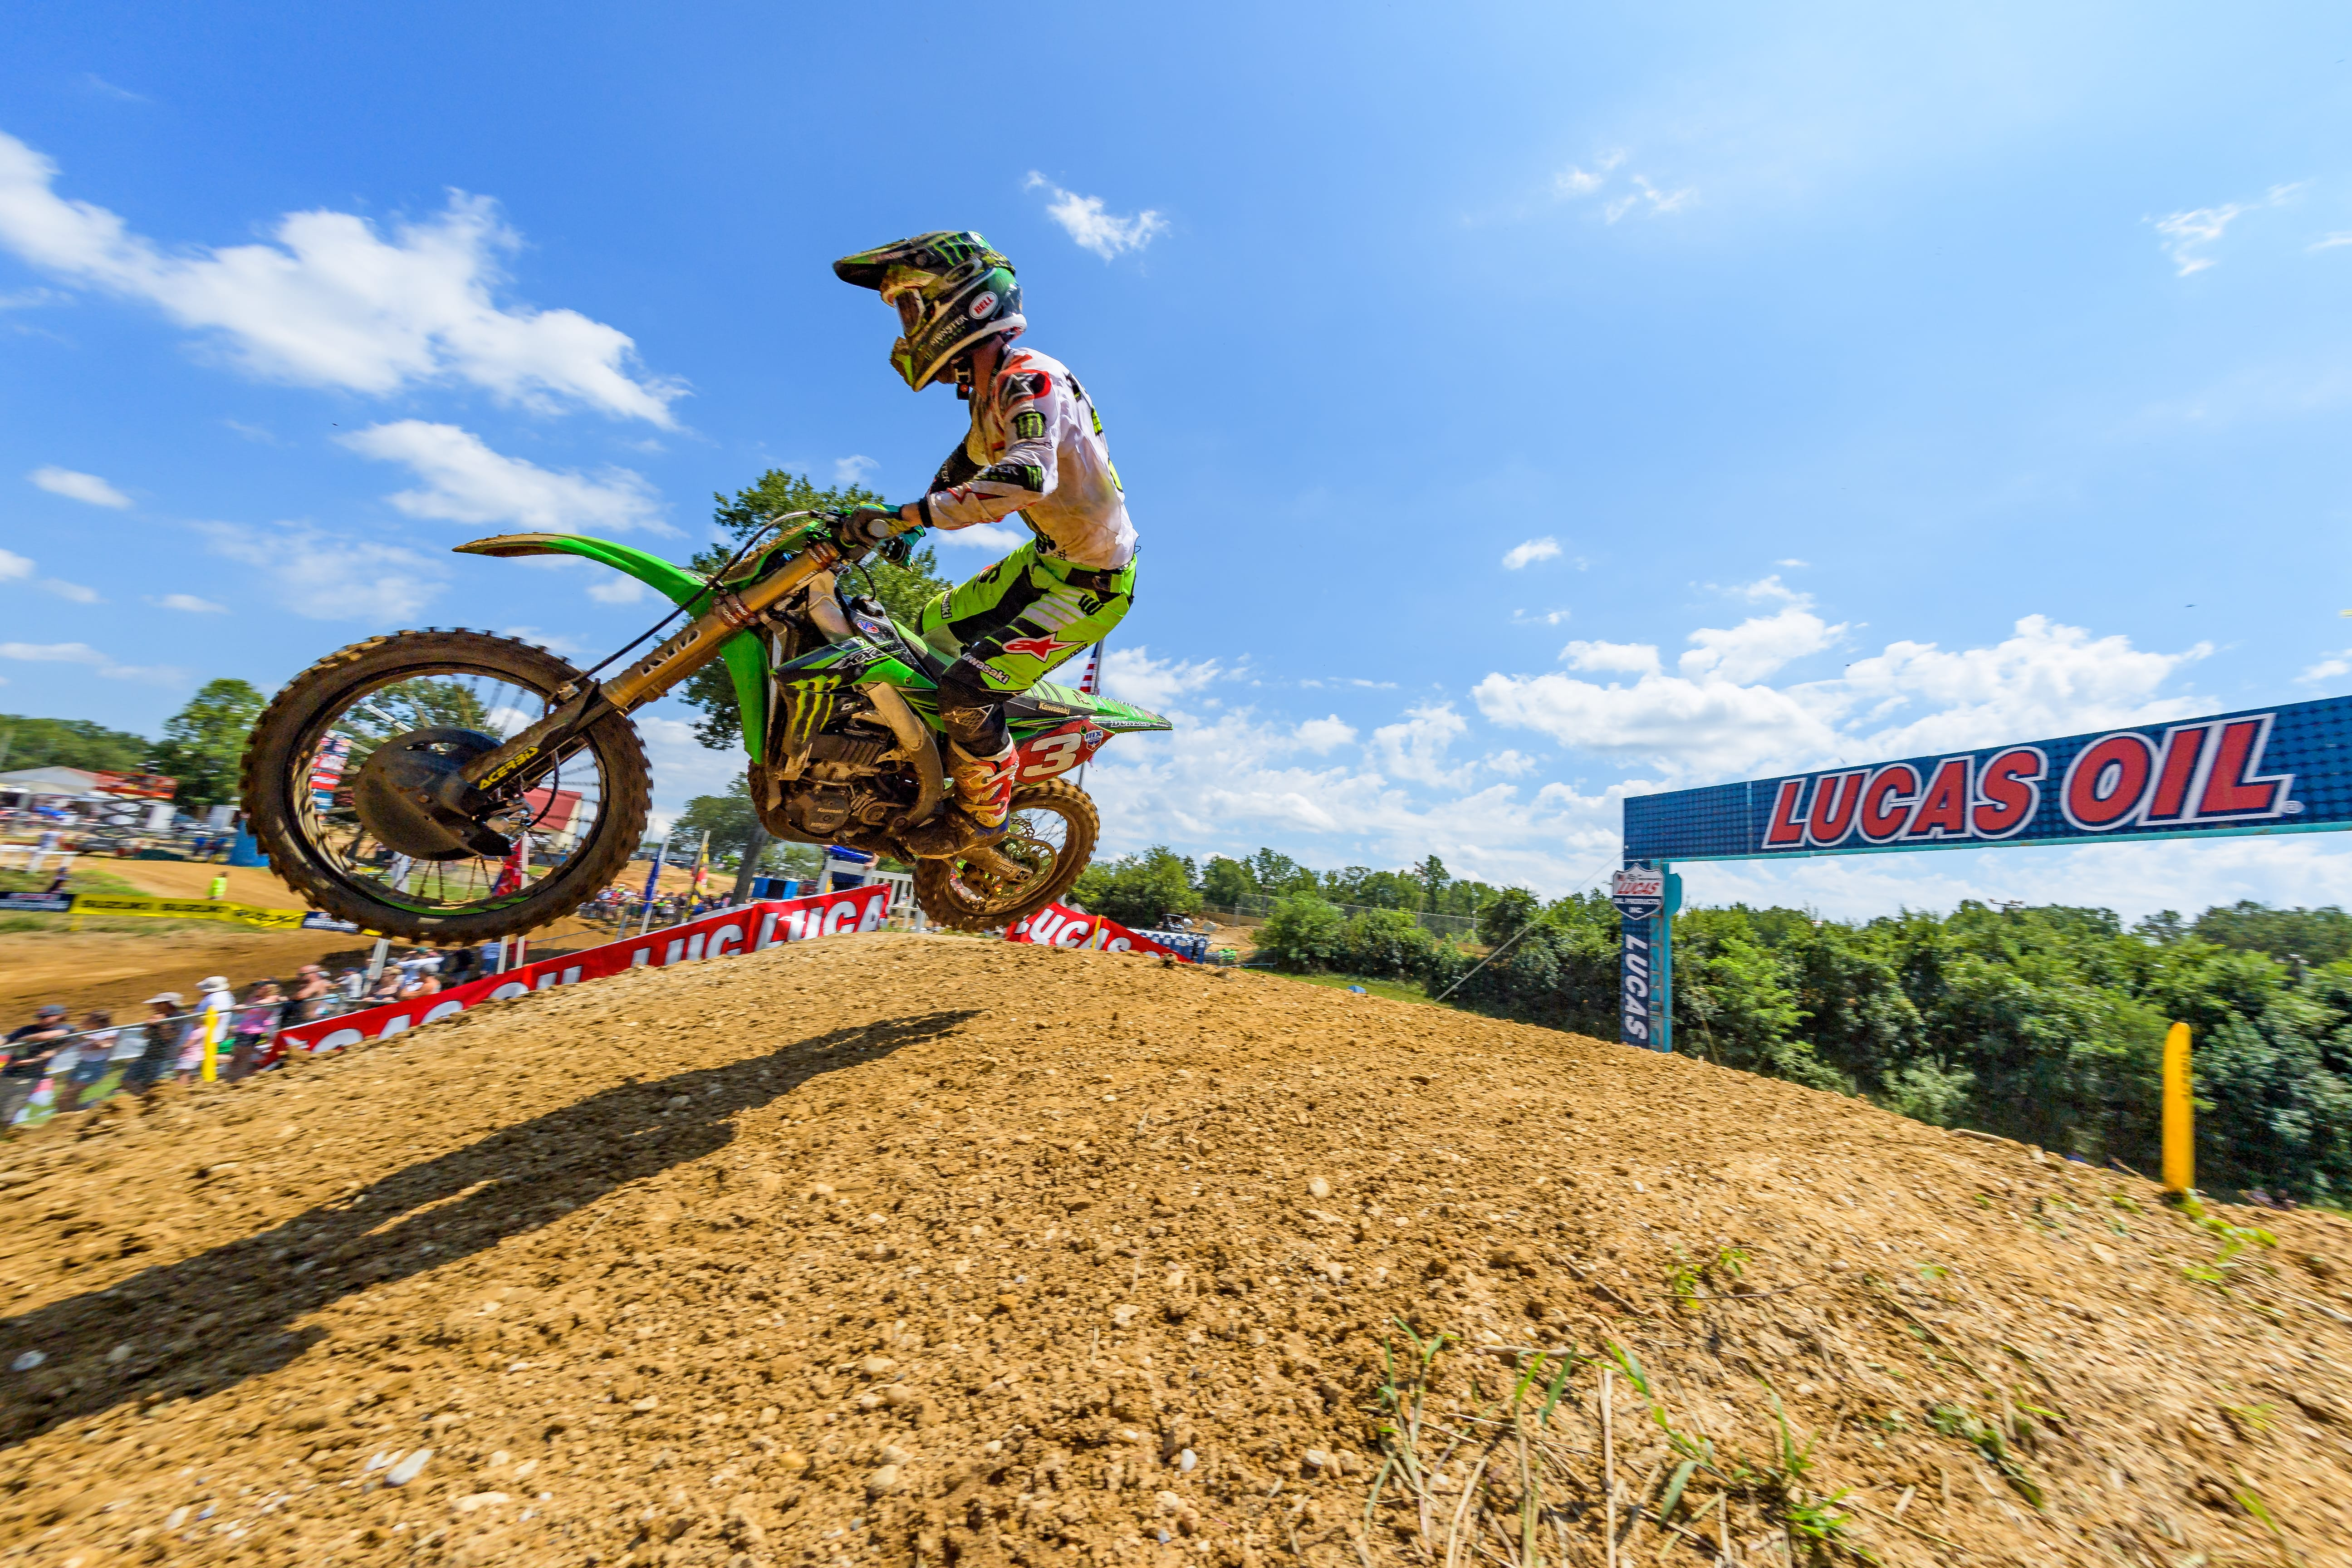 Cianciarulo Claims First Win at Budds Creek